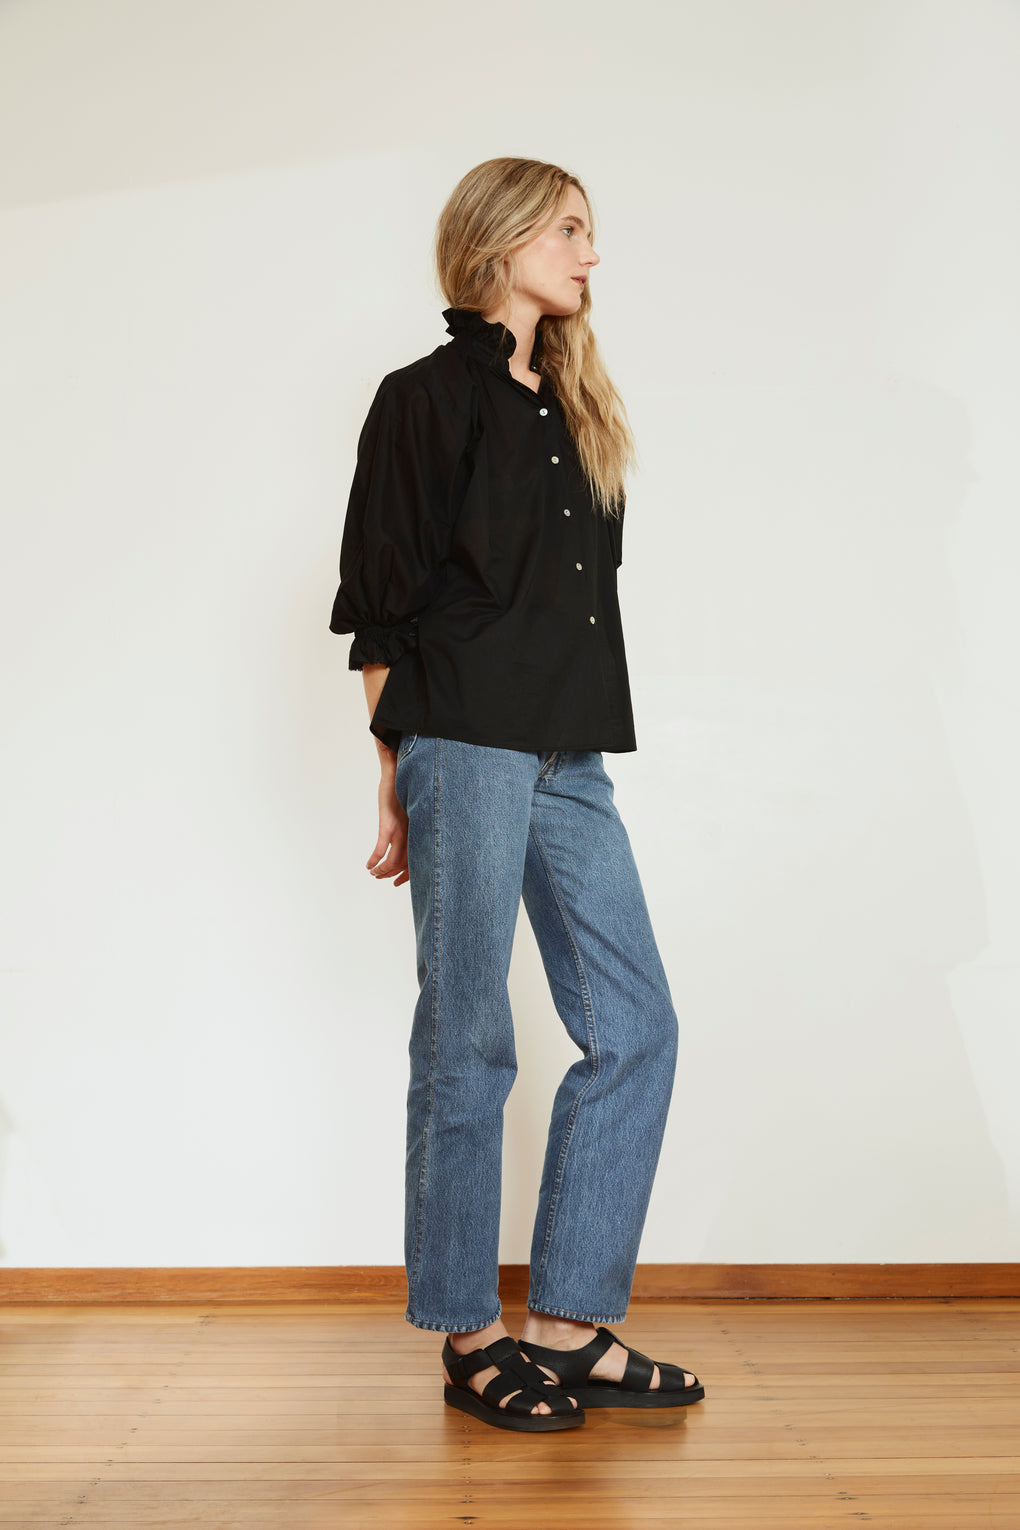 Ruffle Blouse | Cotton Voile | Black